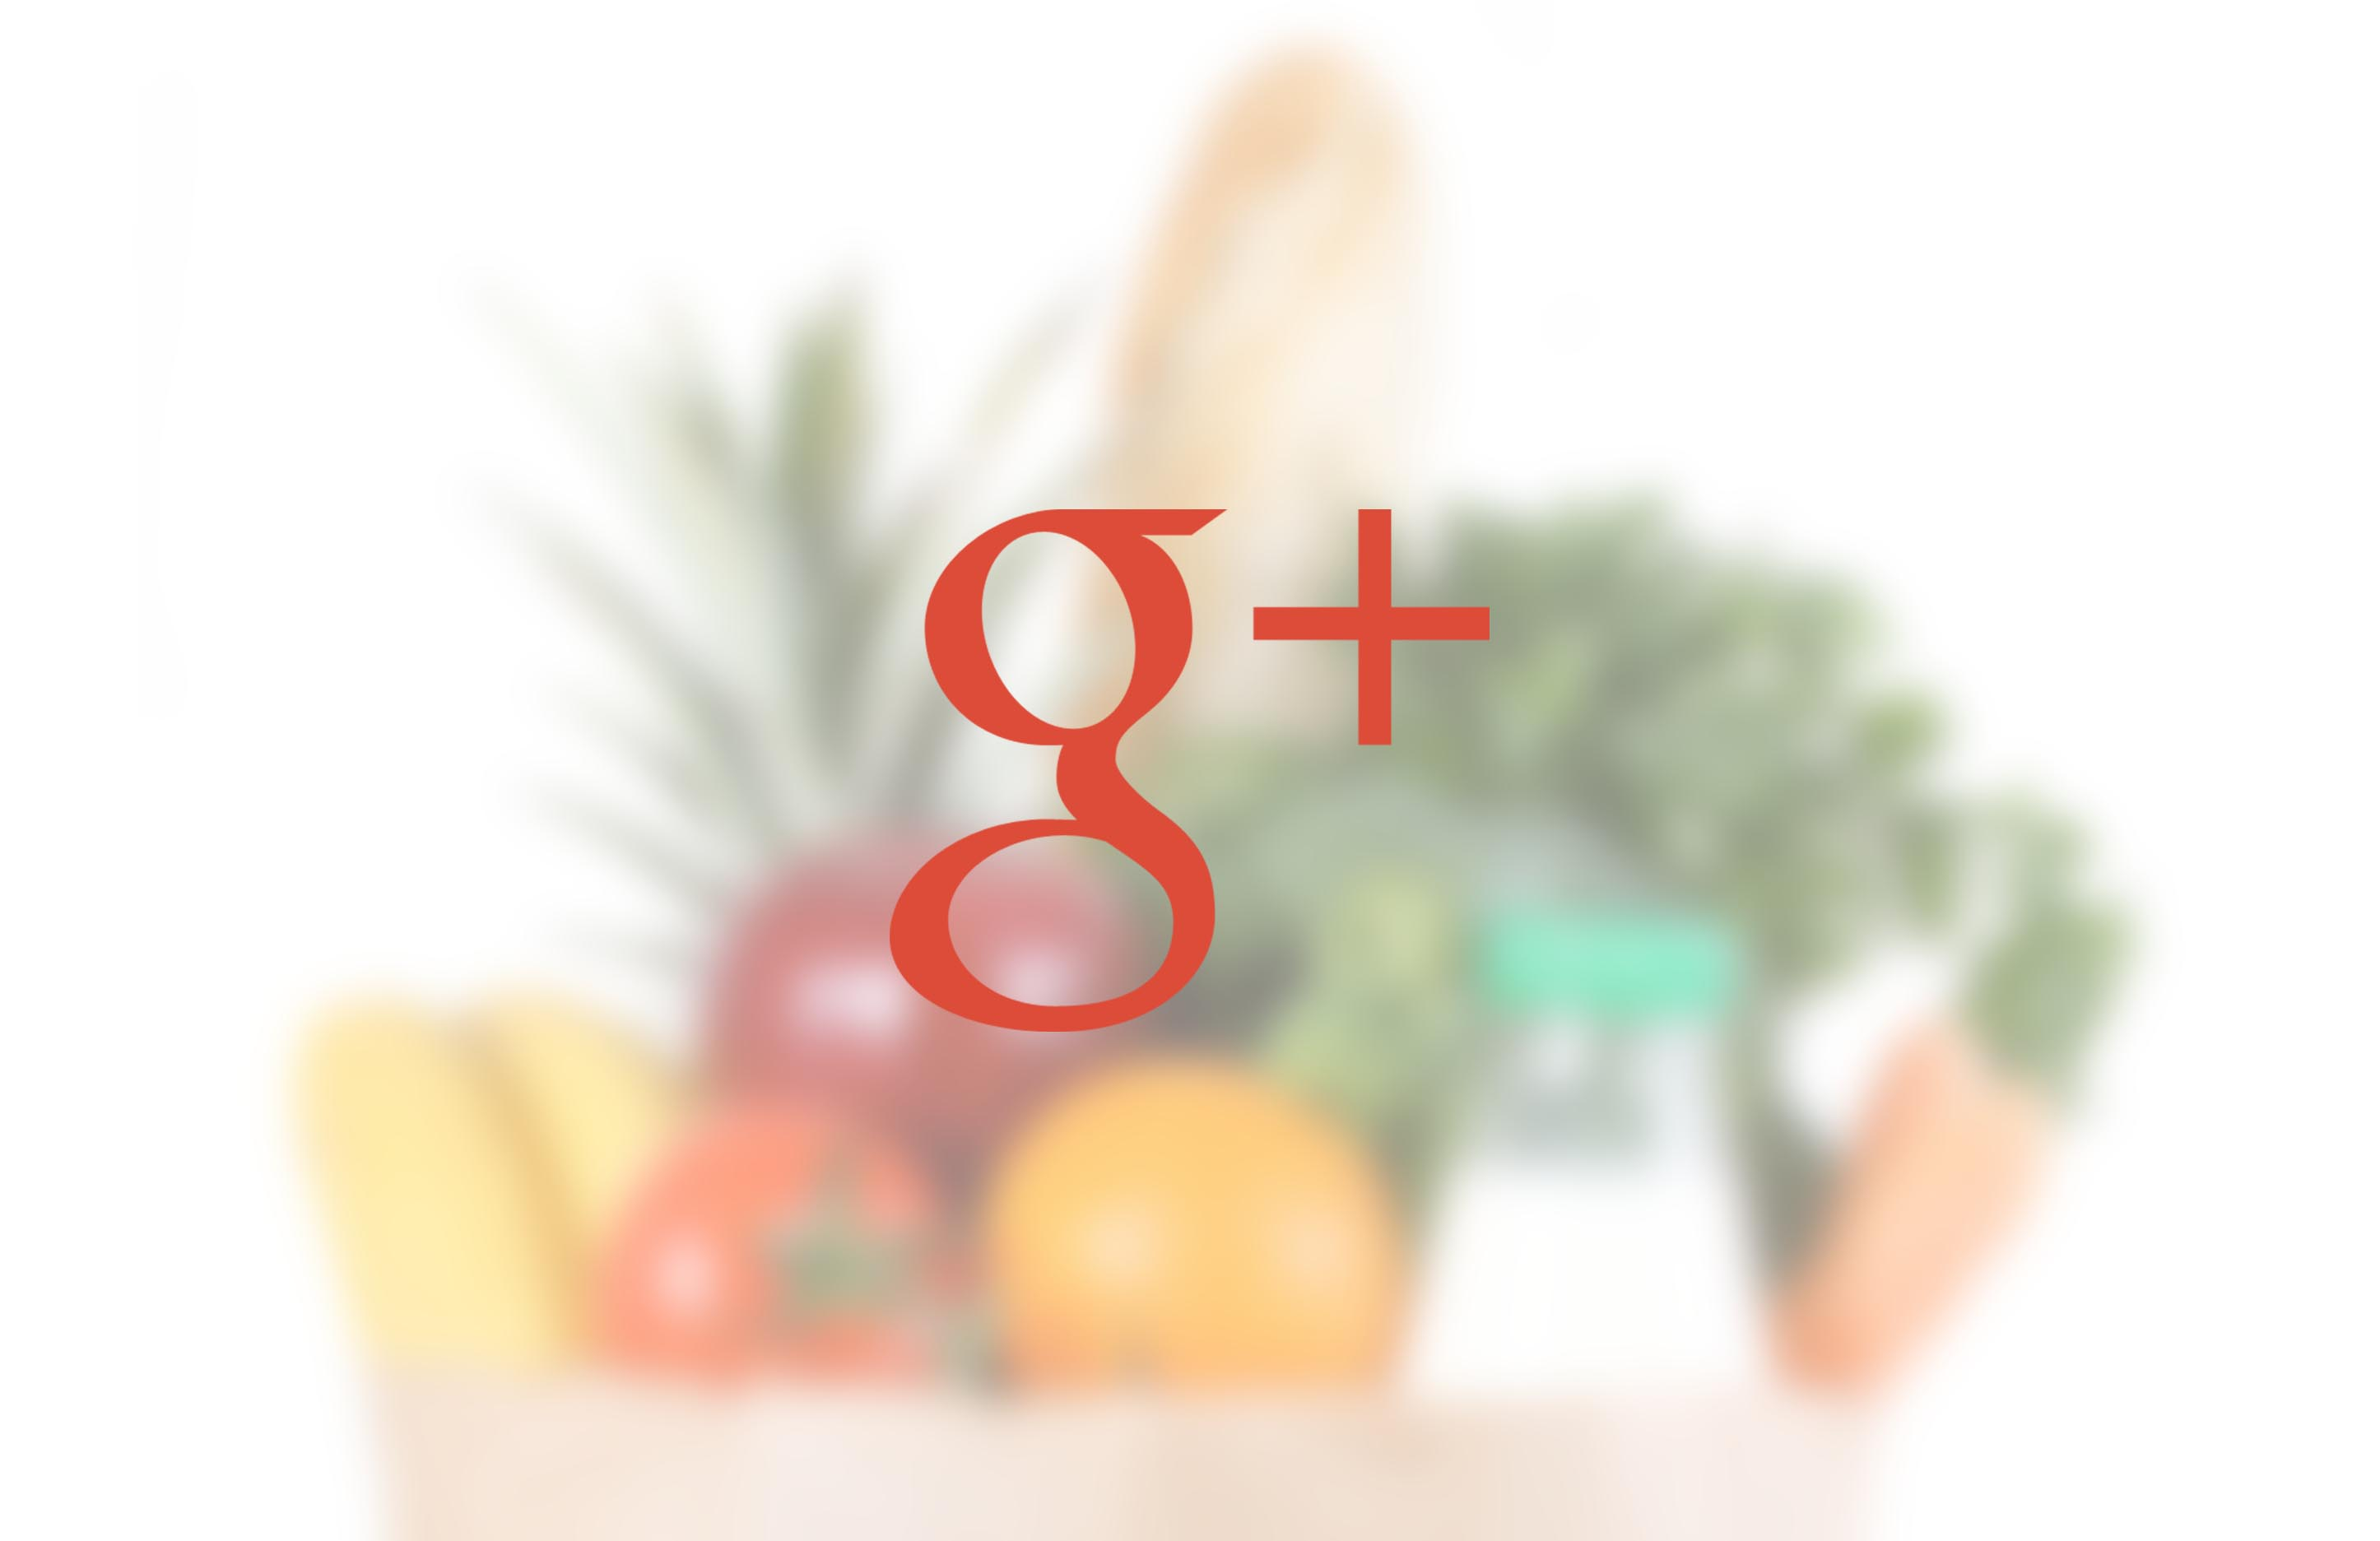 Google Plus Proxy-Delhaize-Bambrugge